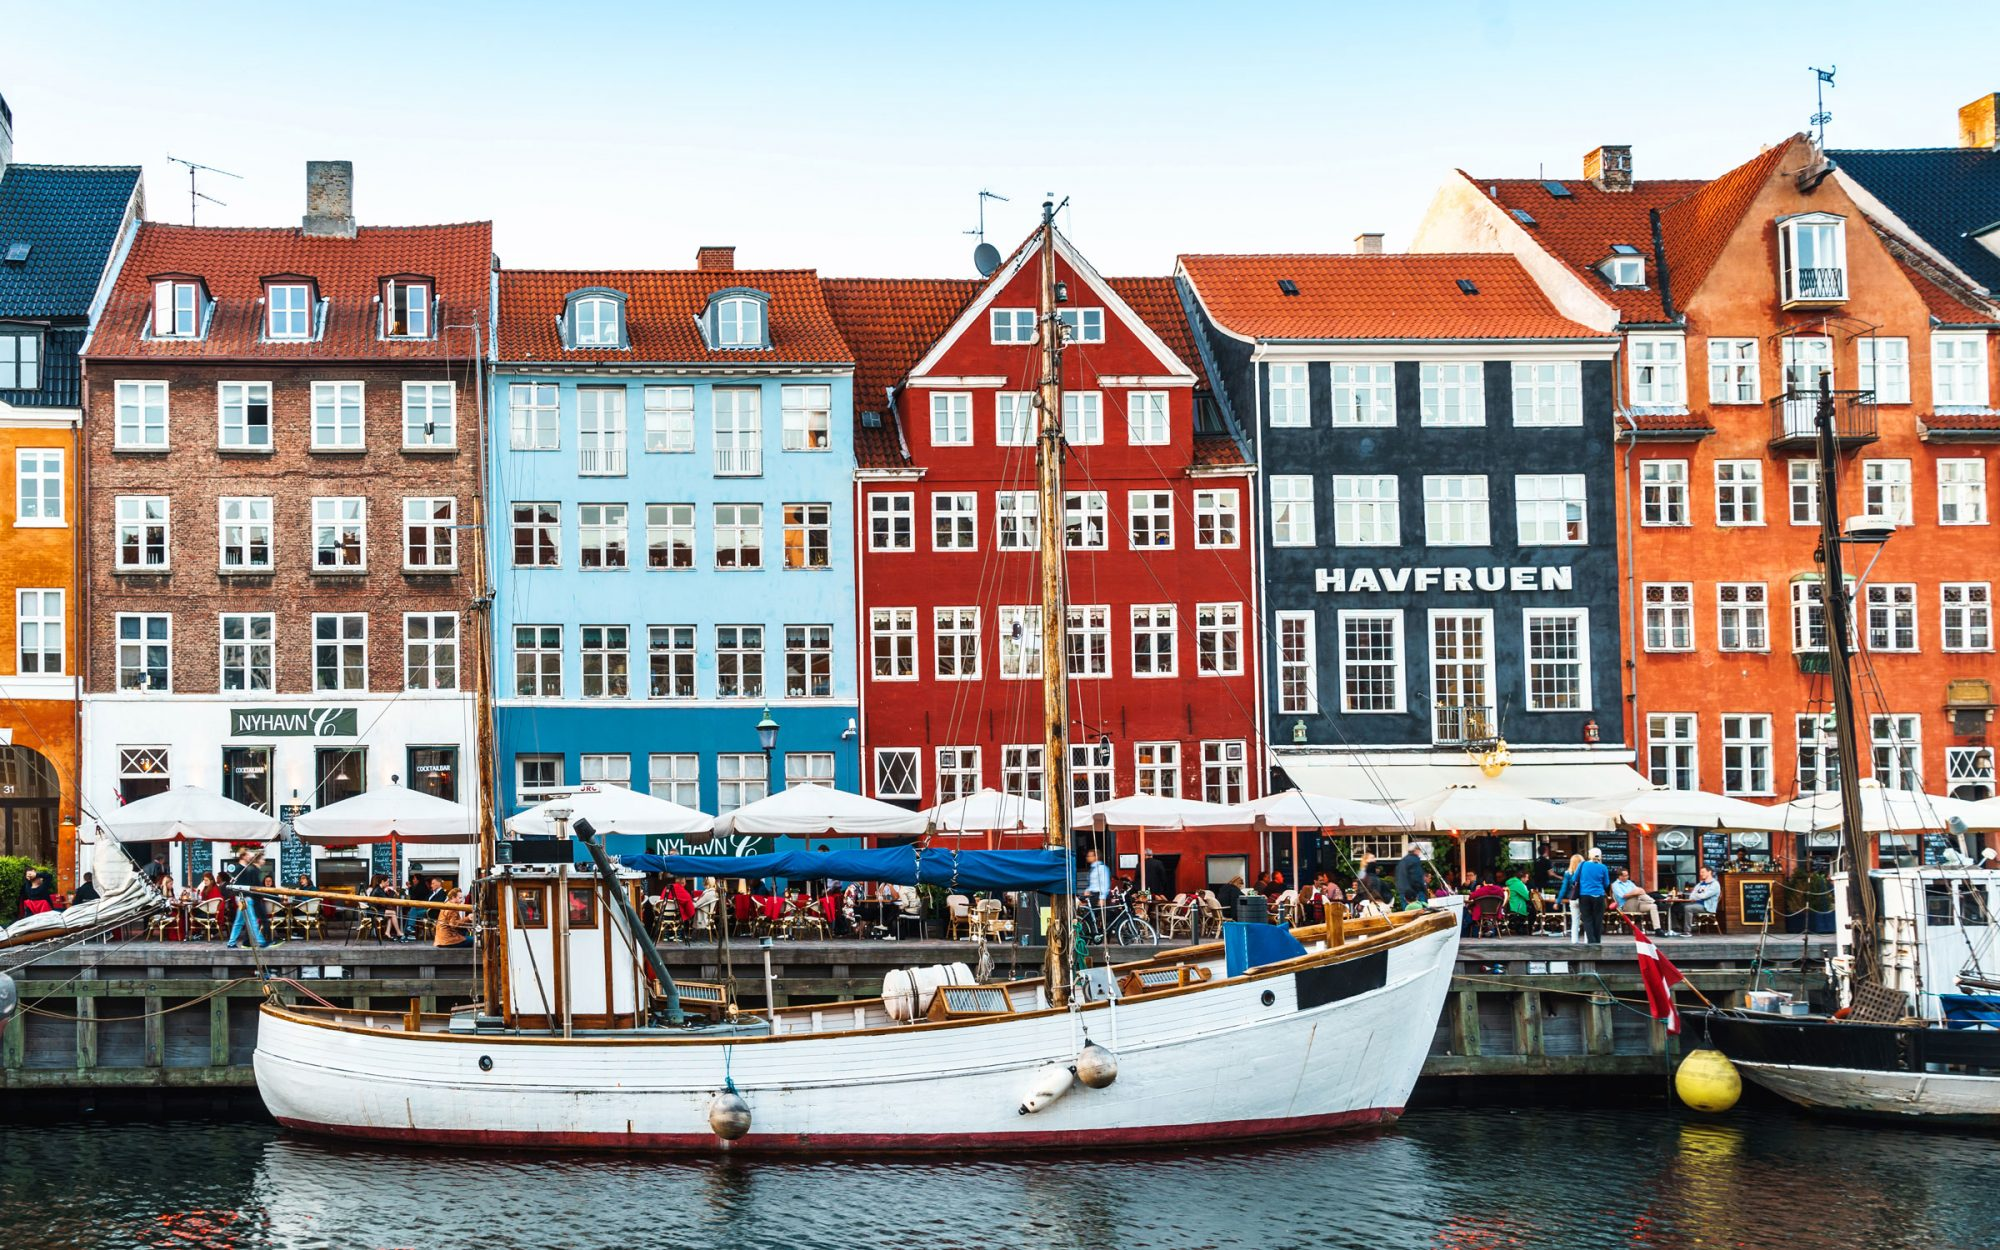 Fly to Europe for $343 Round-trip